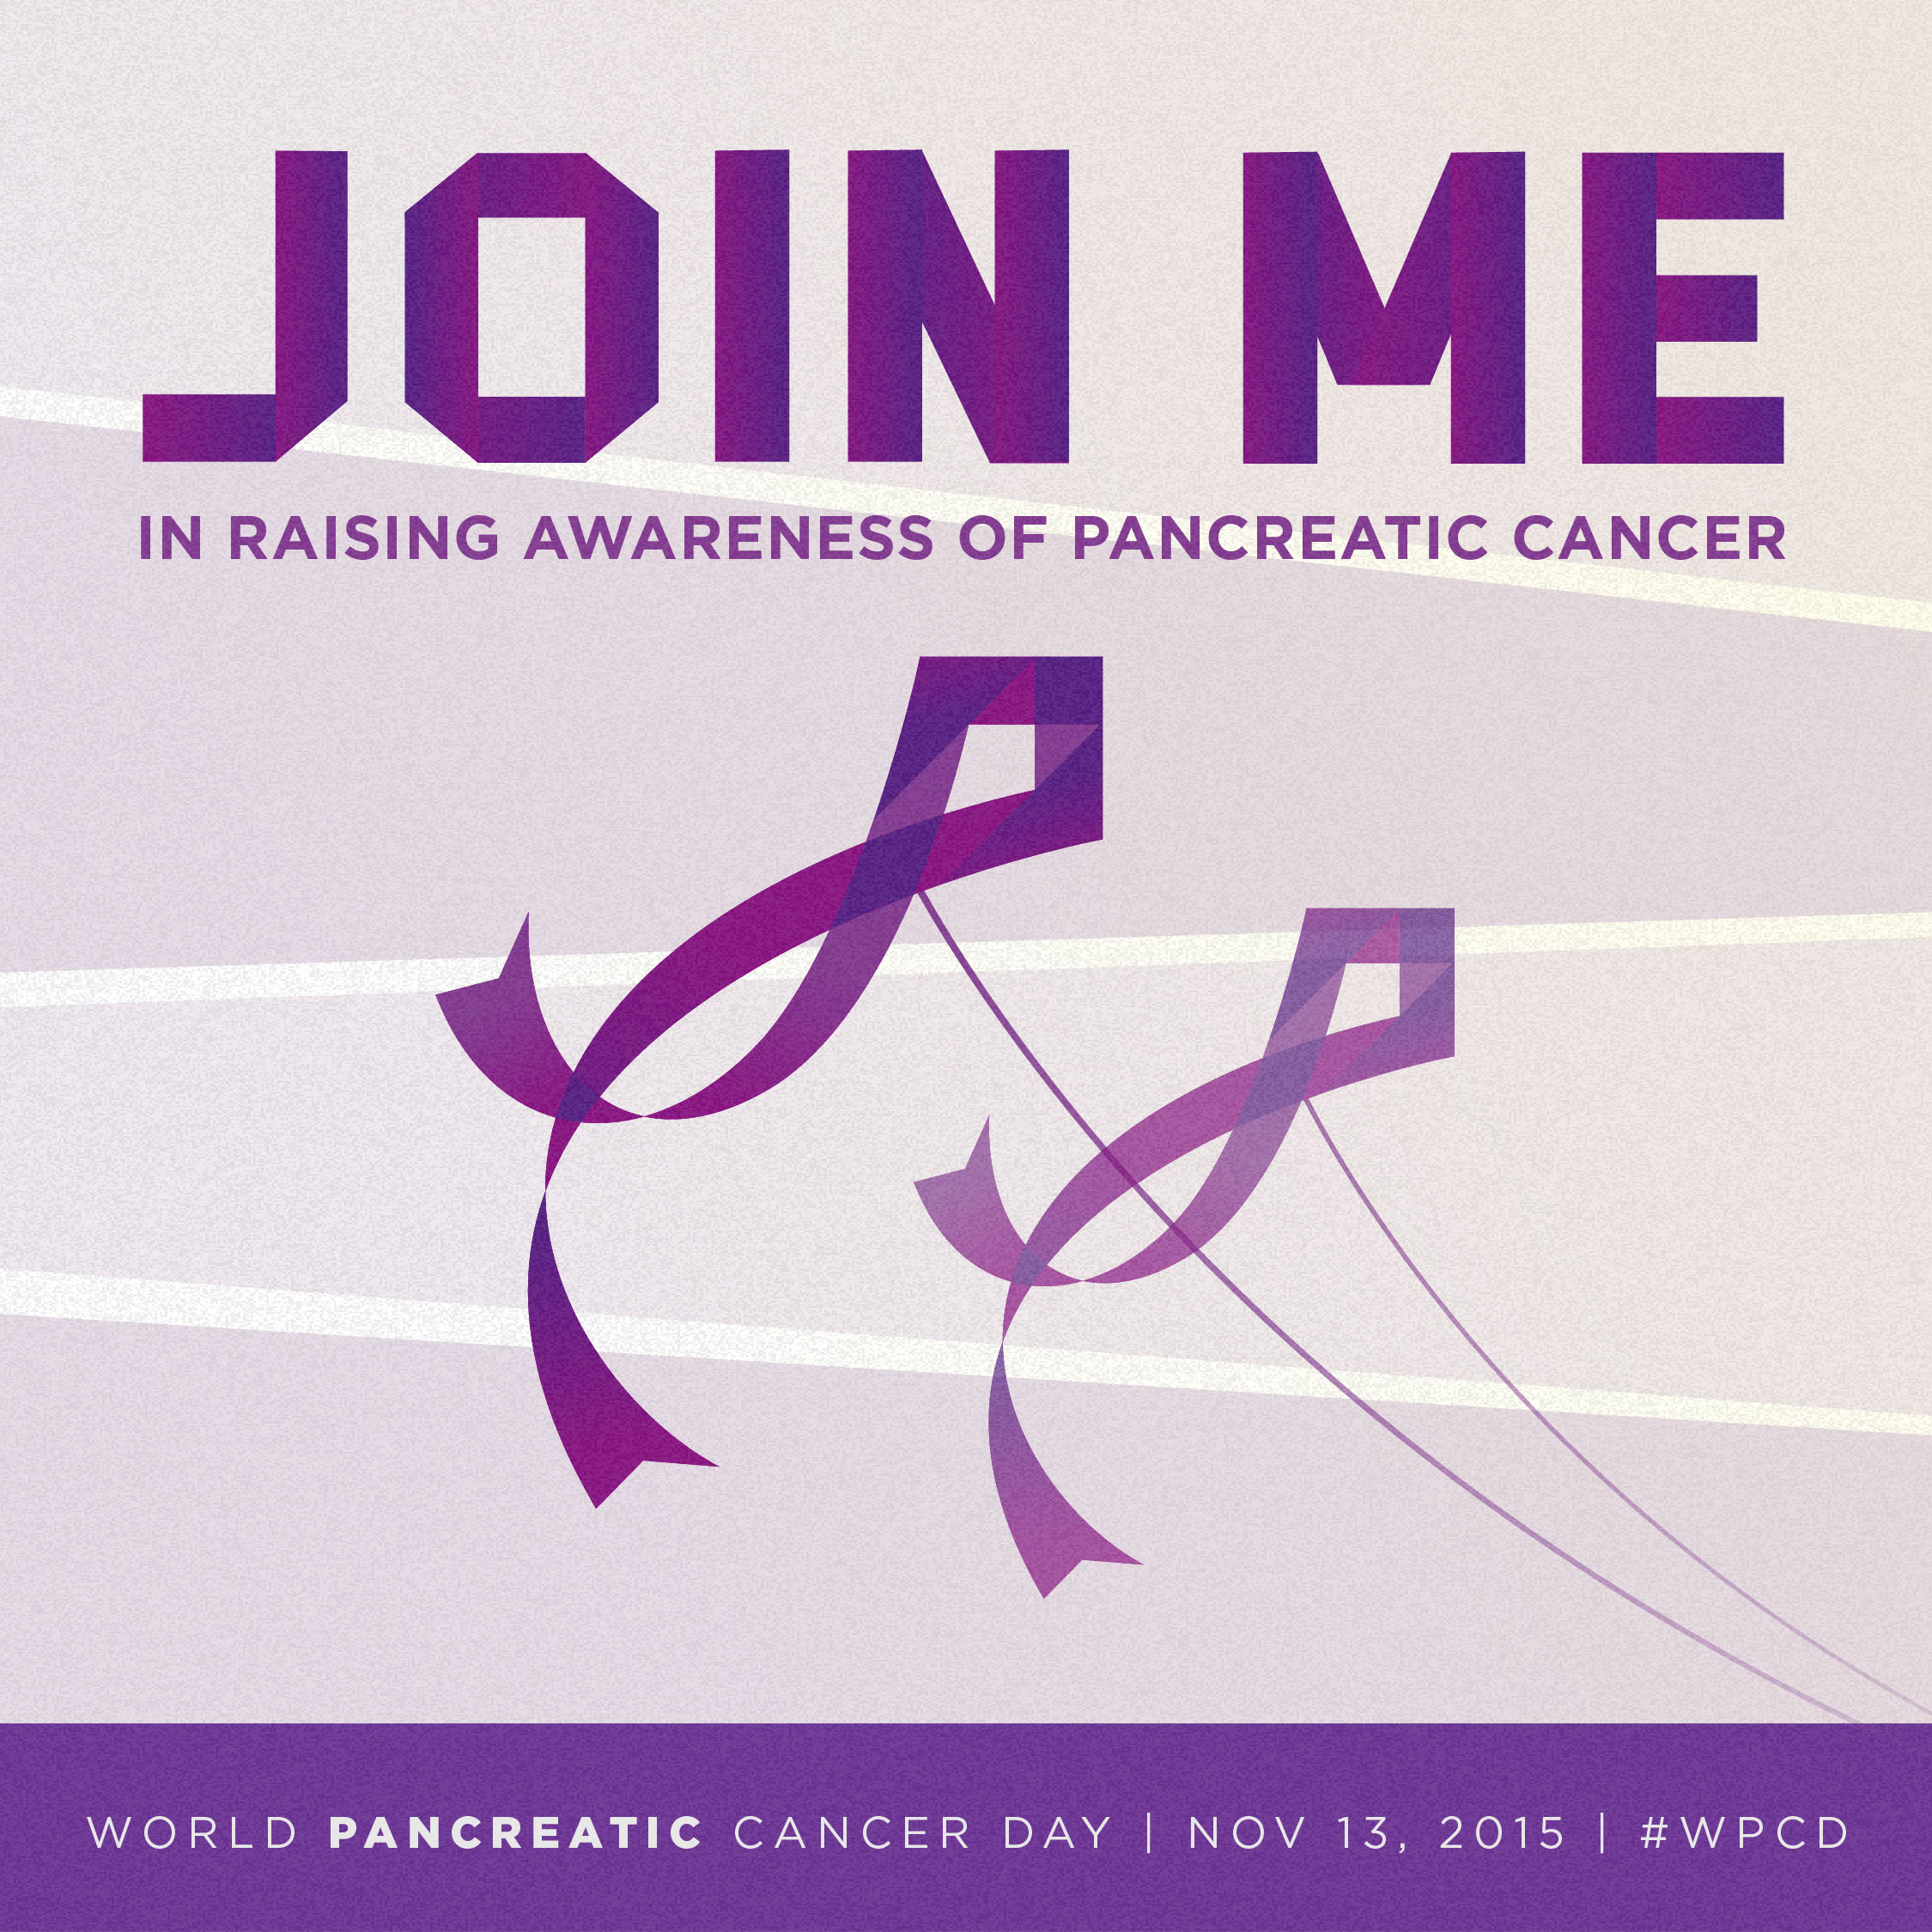 Everyone can get involved to raise awareness for pancreatic cancer.